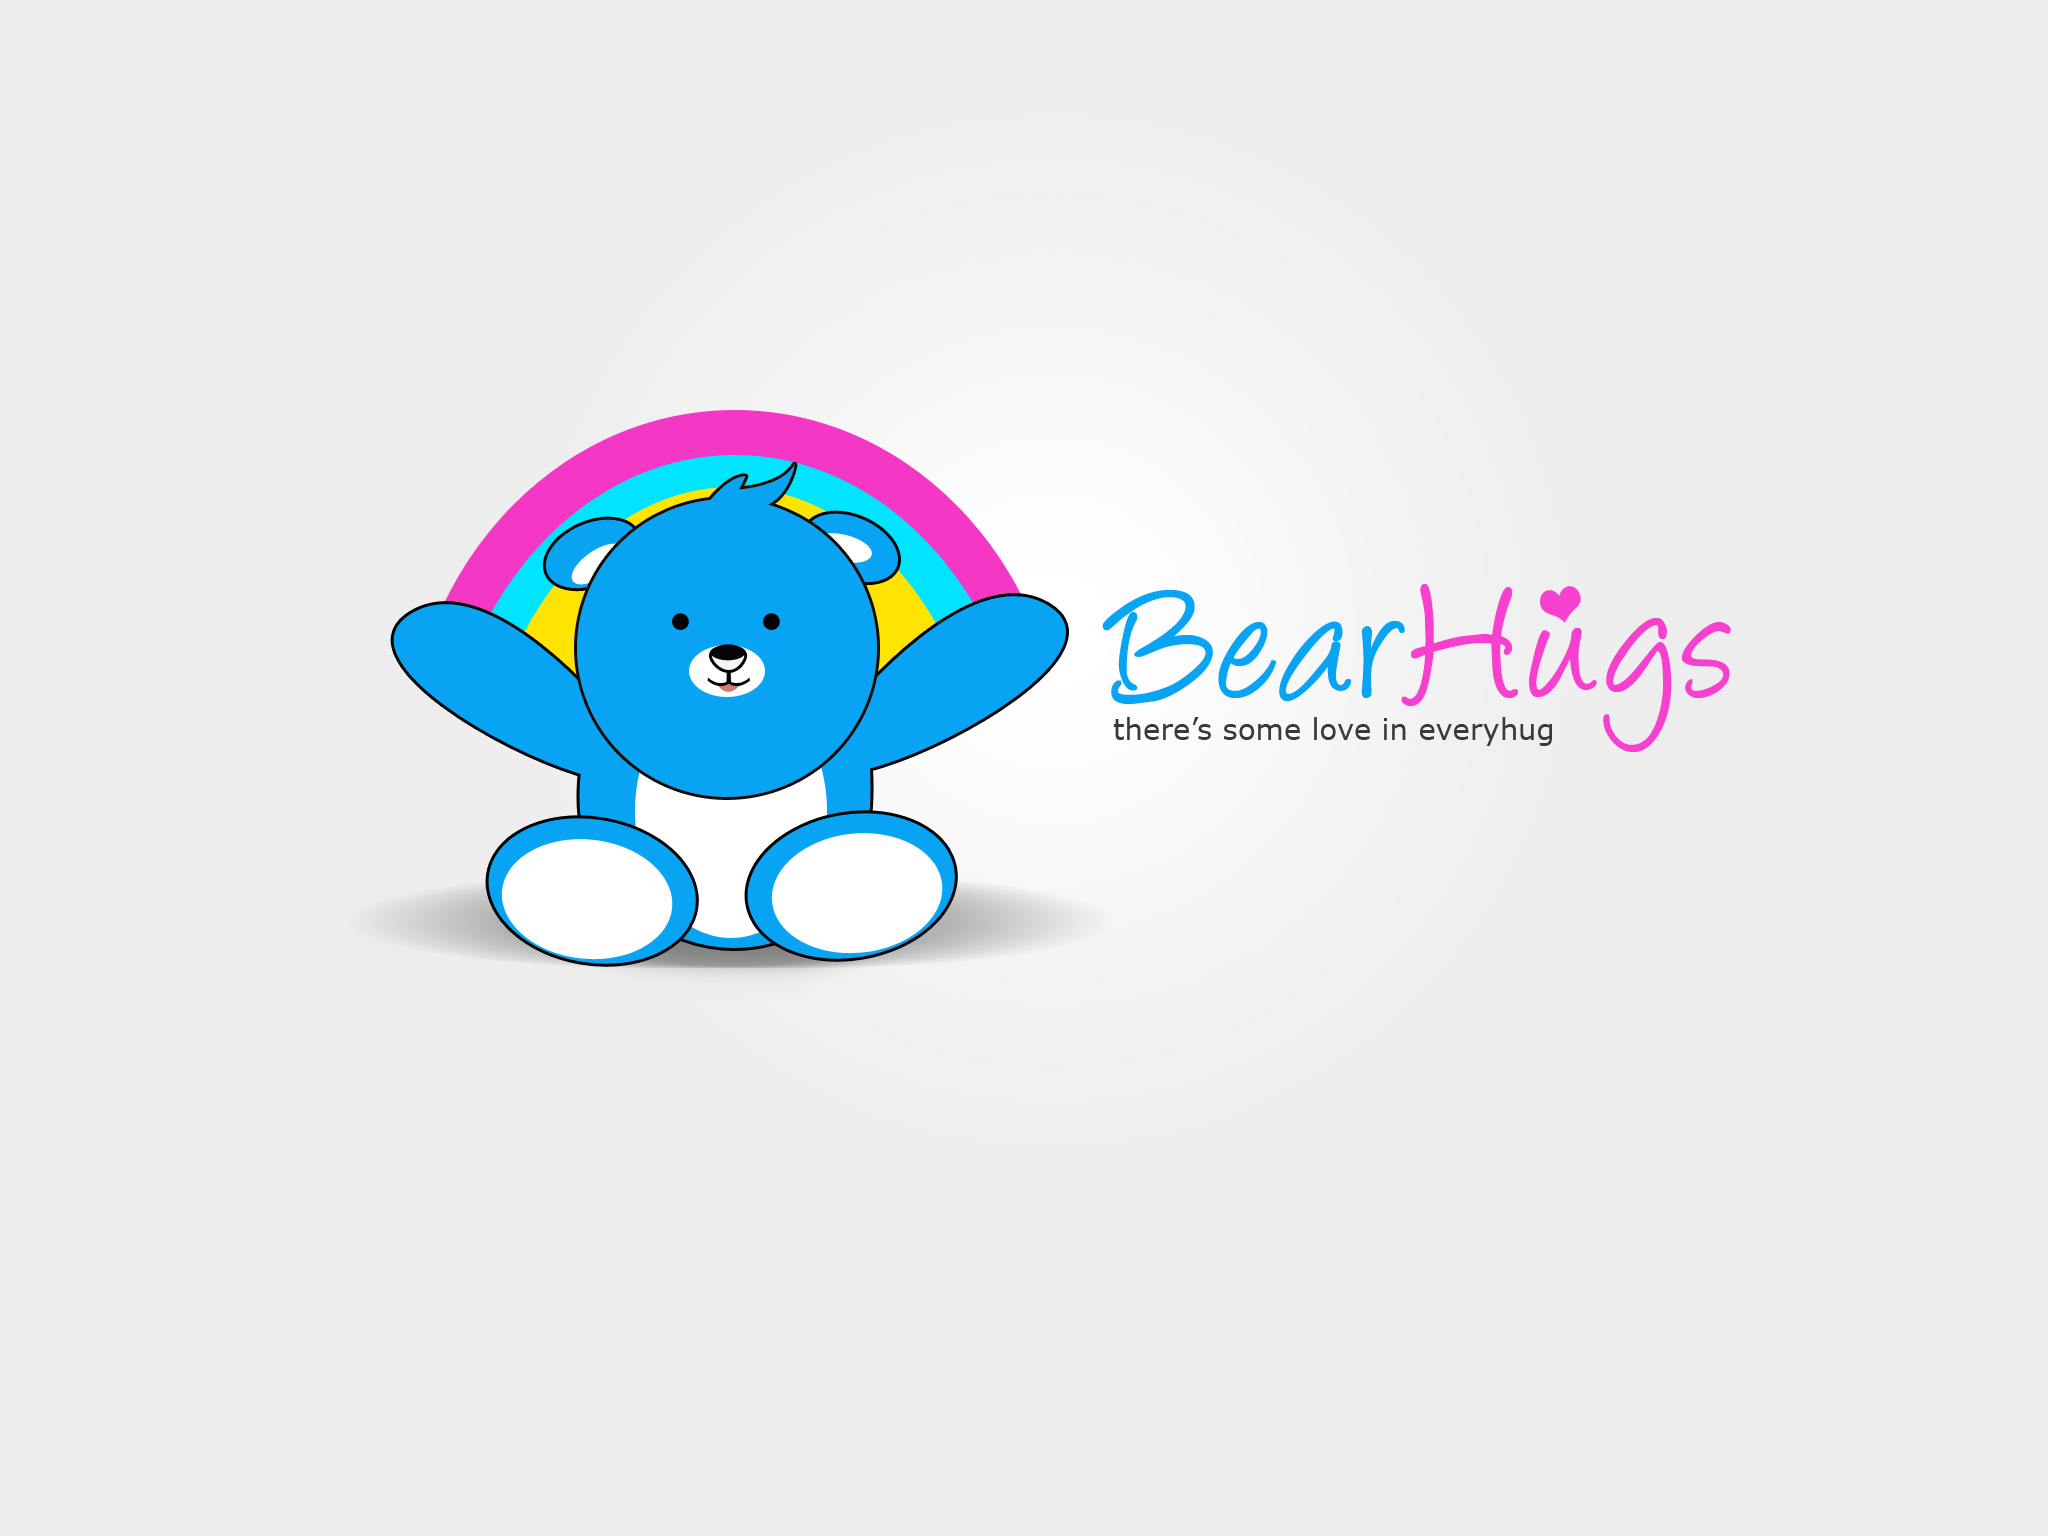 Logo Design by Jan Chua - Entry No. 56 in the Logo Design Contest Inspiring Logo Design for BearHugs.